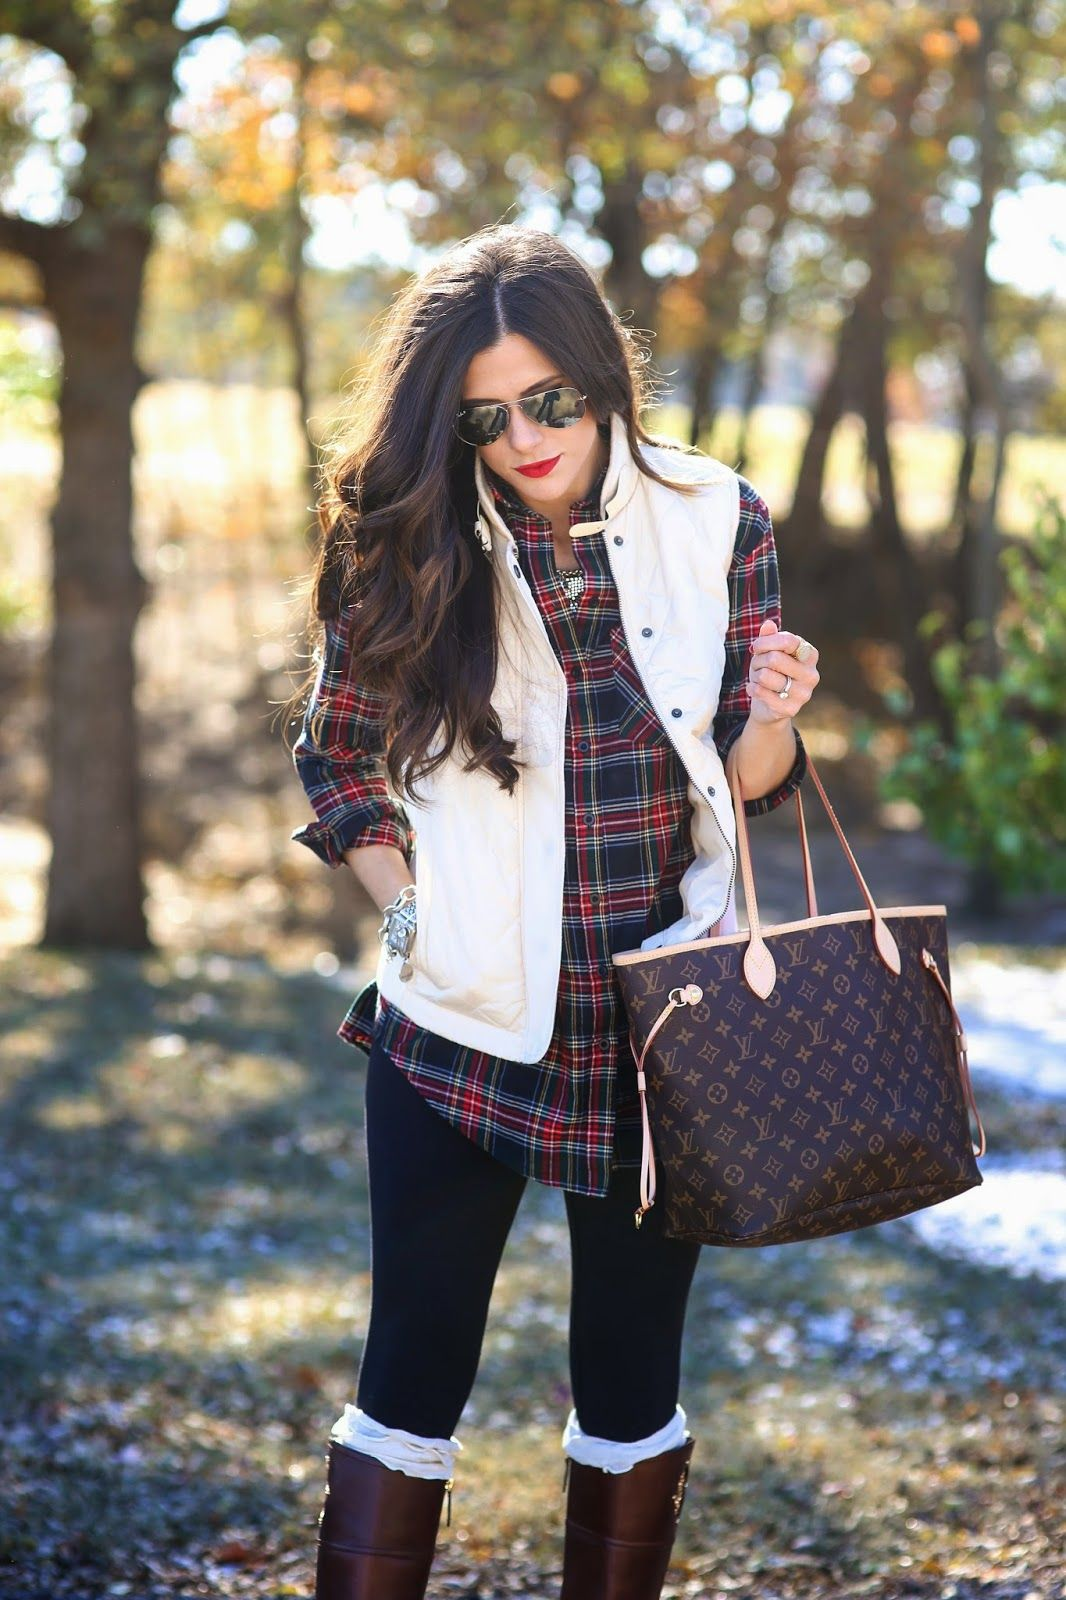 Flannel shirt and leggings  plaid vest leggings and riding boots Not my usual style but I